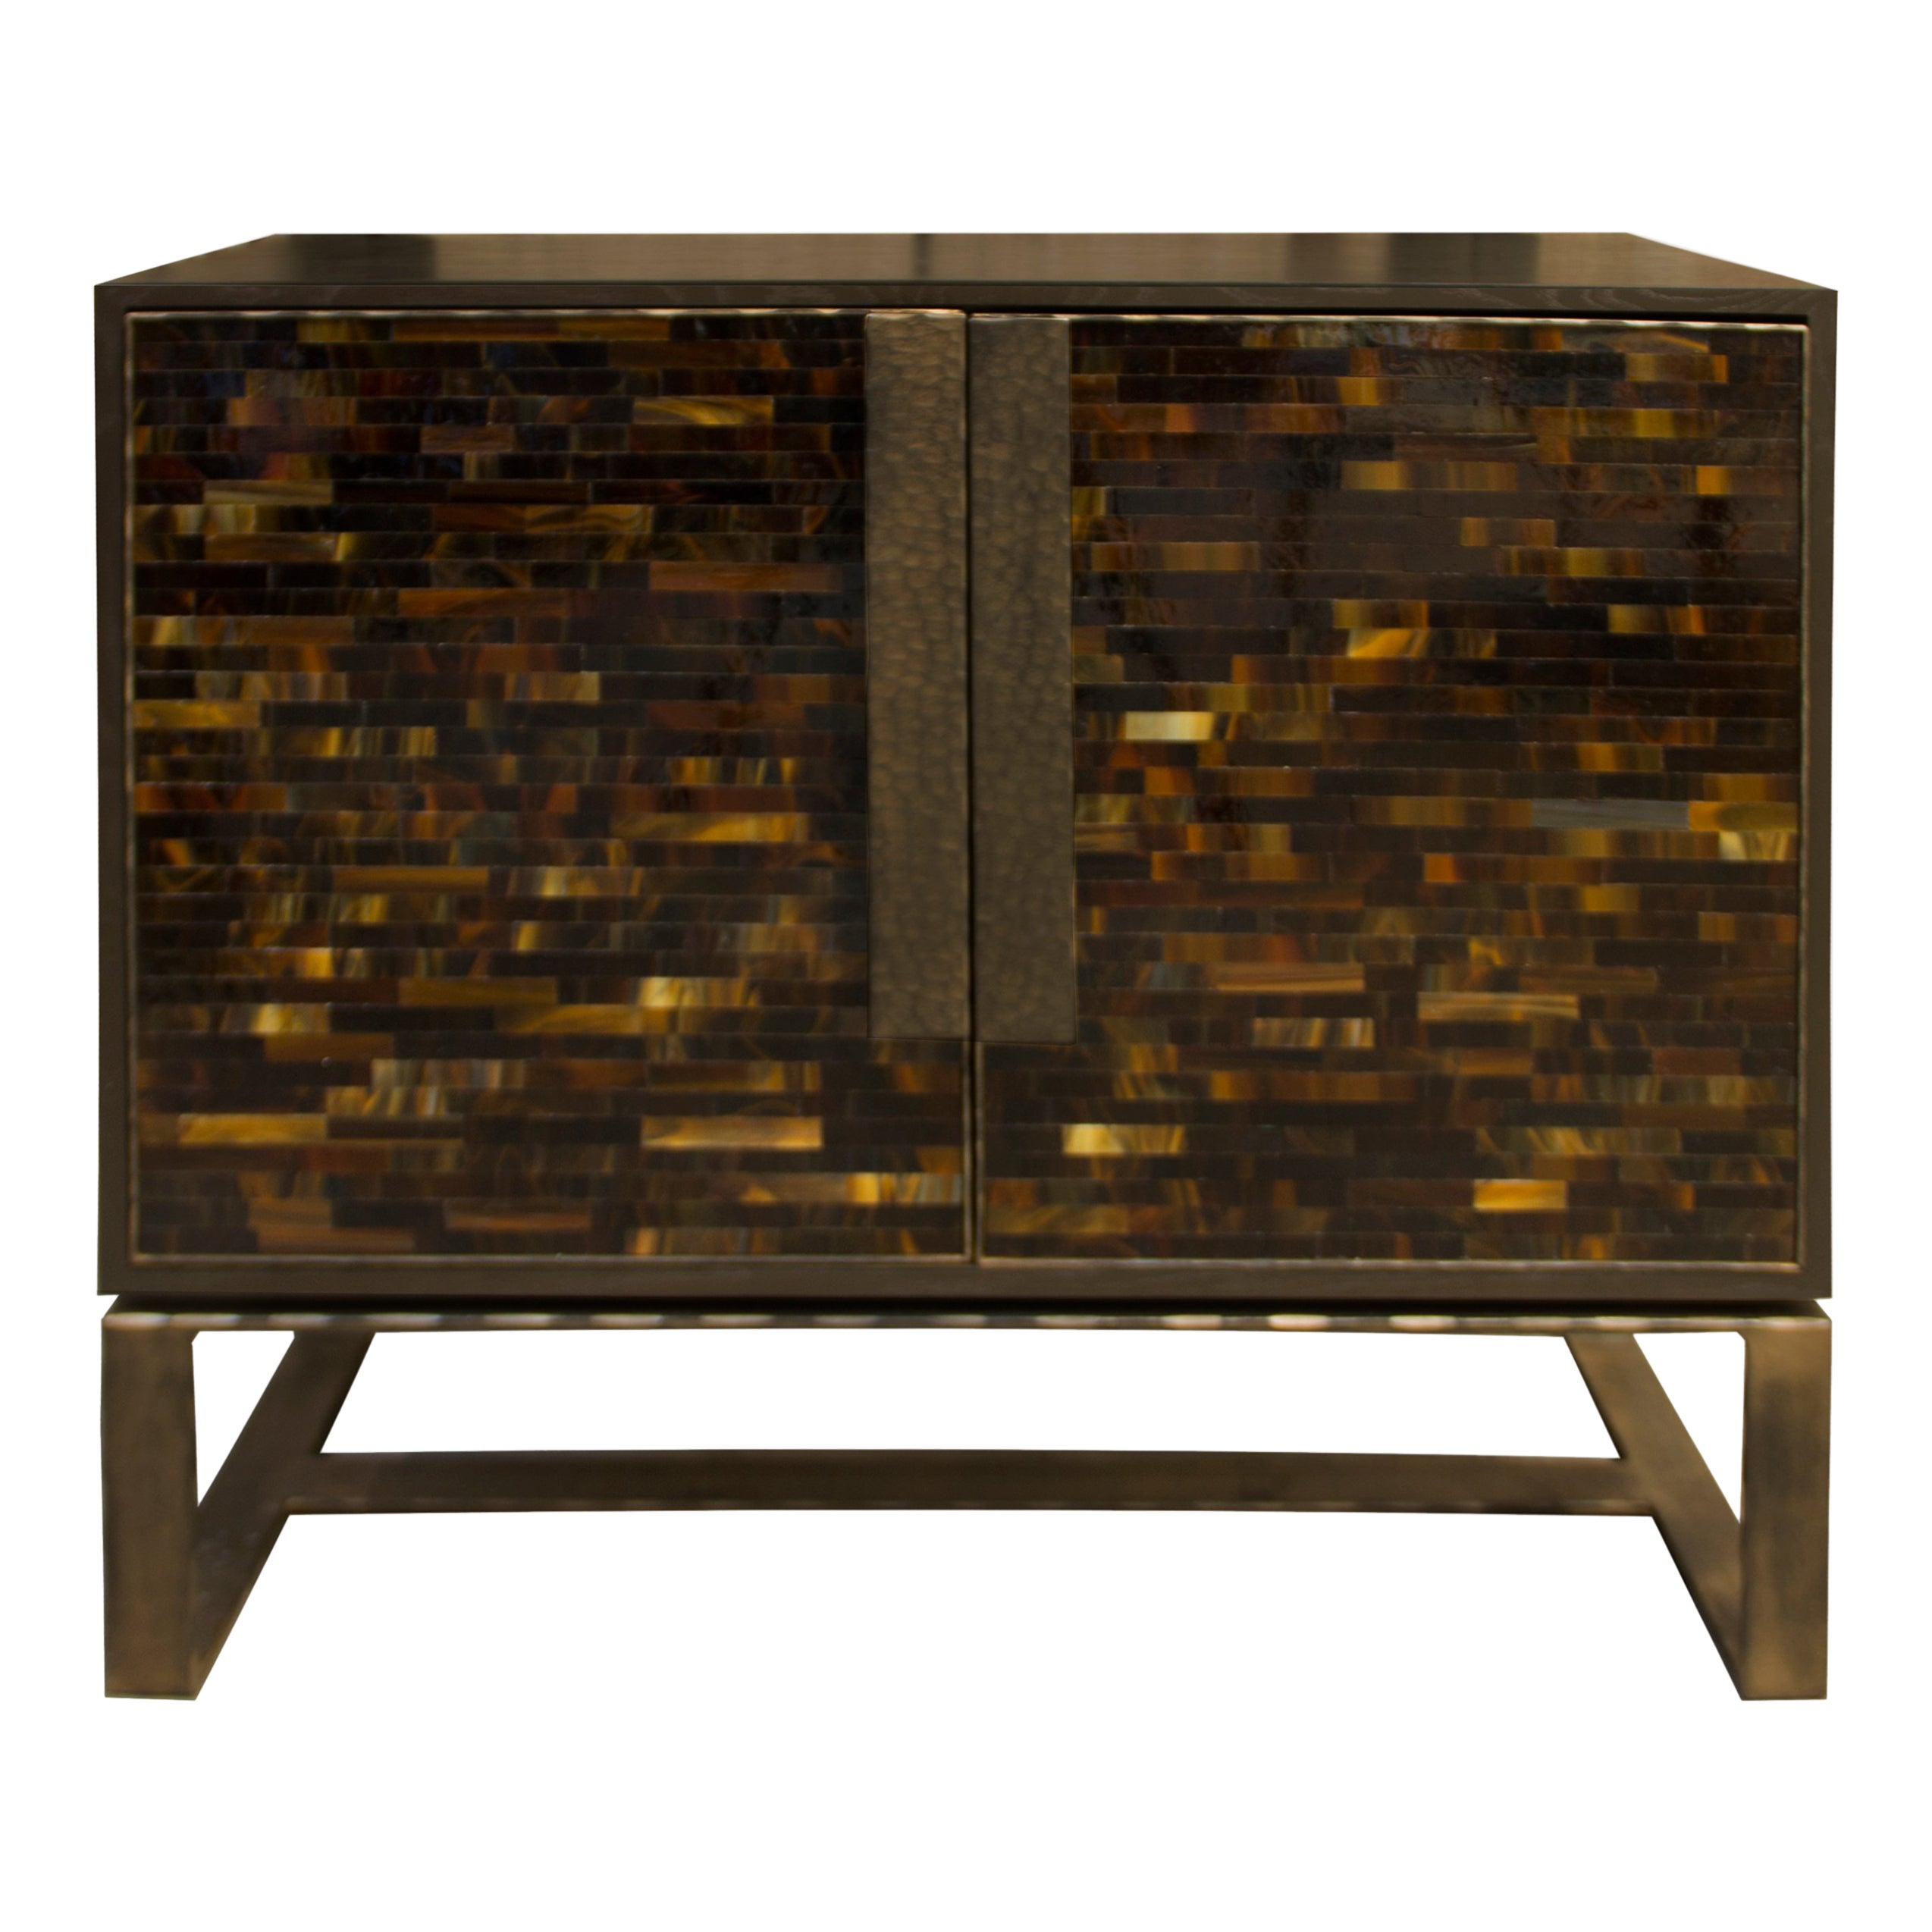 Customizable Chelsea Brown Glass Mosaic Credenza with Metal Base by Ercole Home